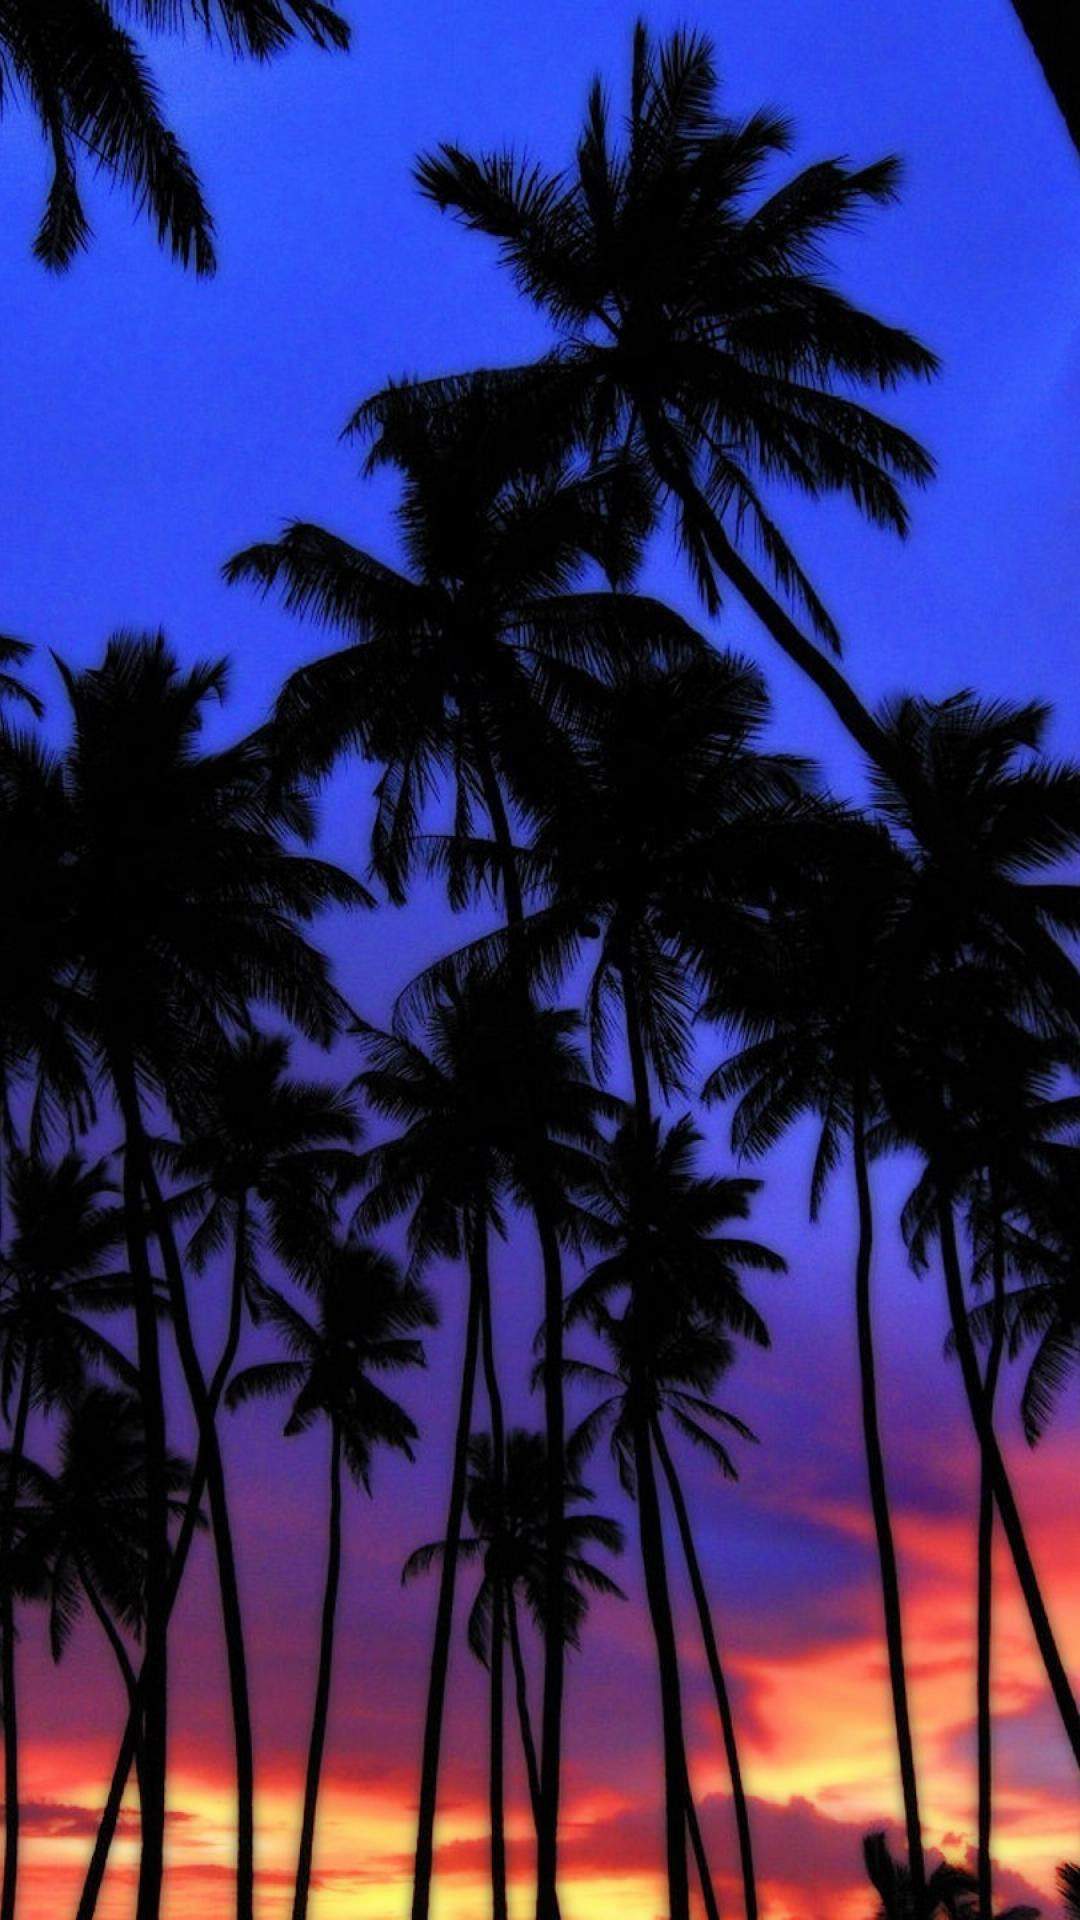 Sunset Wallpapers Palm Trees , HD Wallpaper & Backgrounds